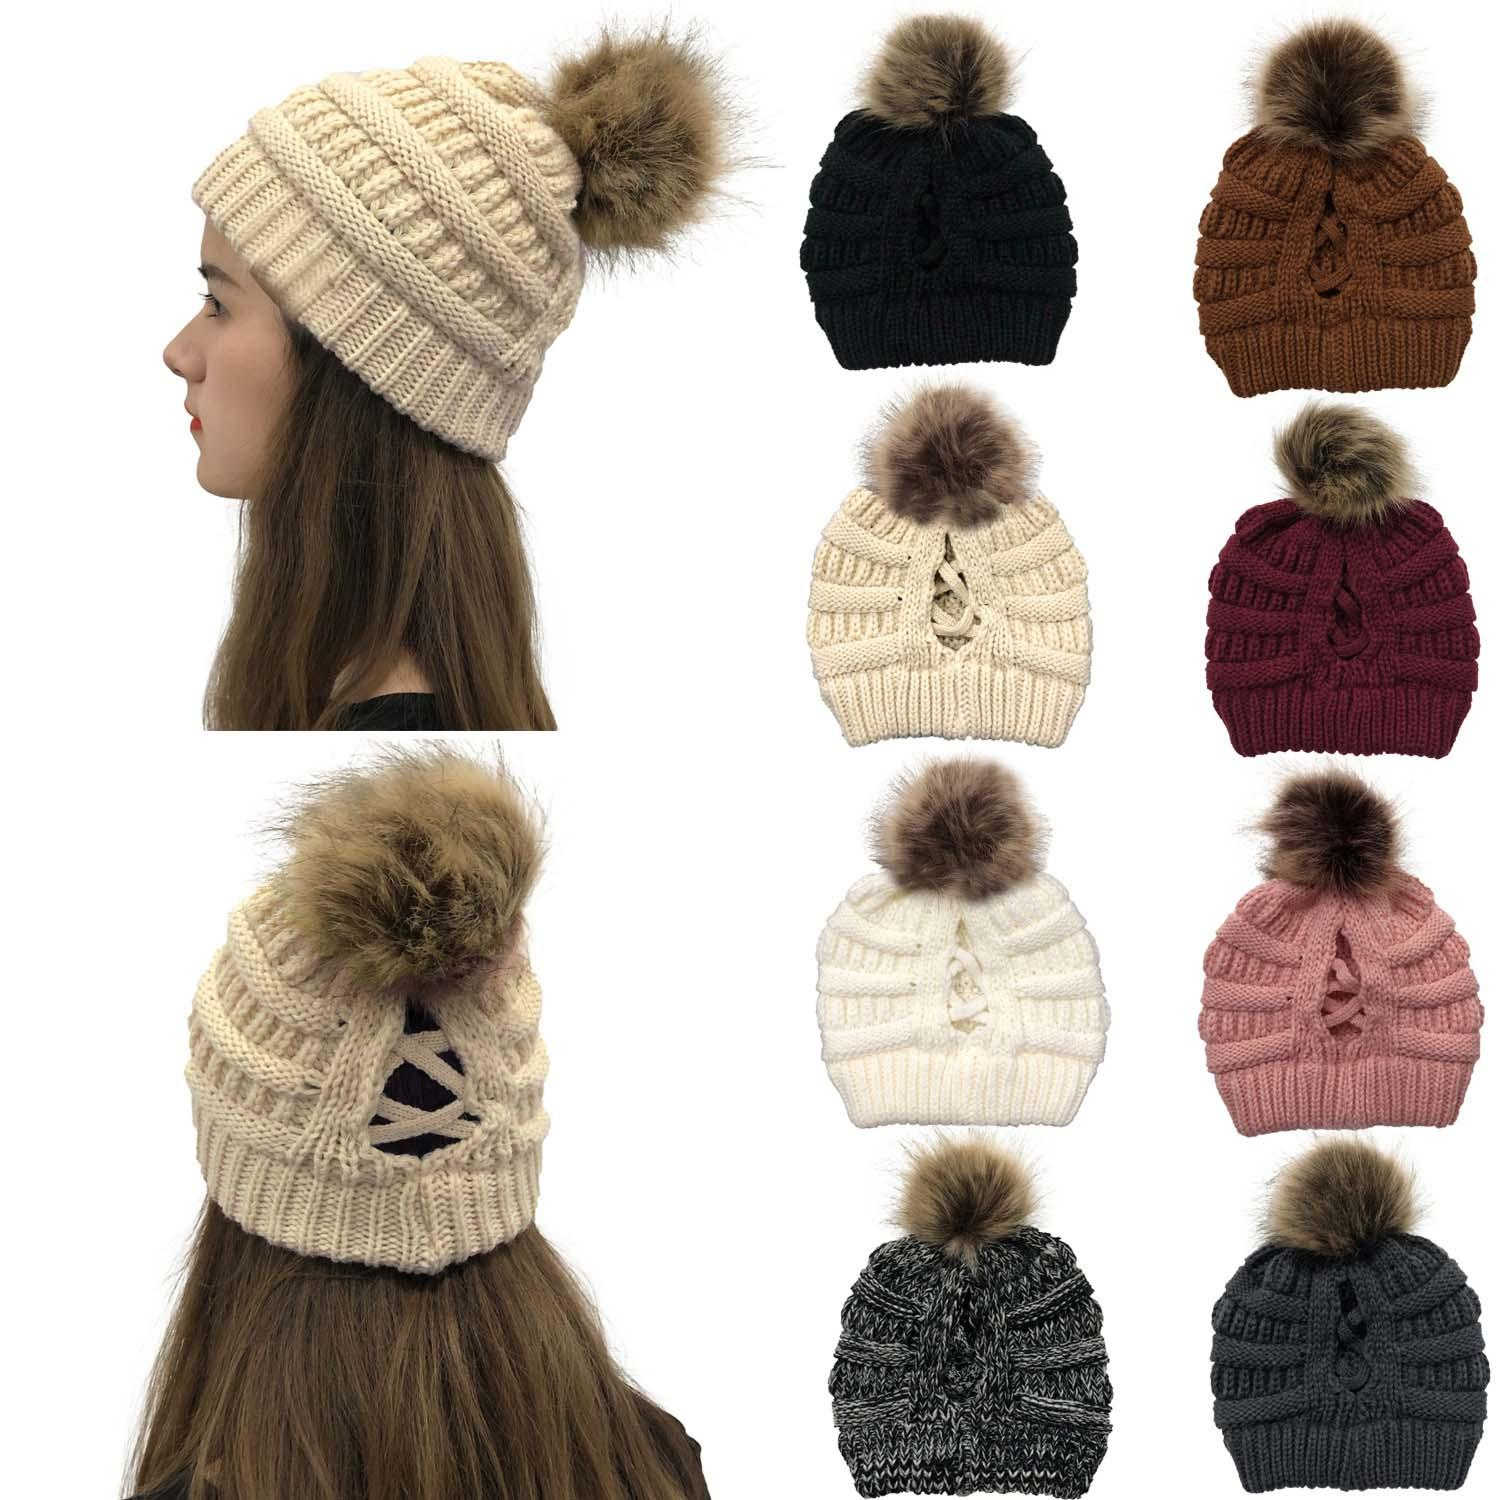 New Style Horsetail Hat Winter Warm Female Pom Pom Hat For Womens Foldable Knitted Casual Beanies Cap Thick Hat DLH489